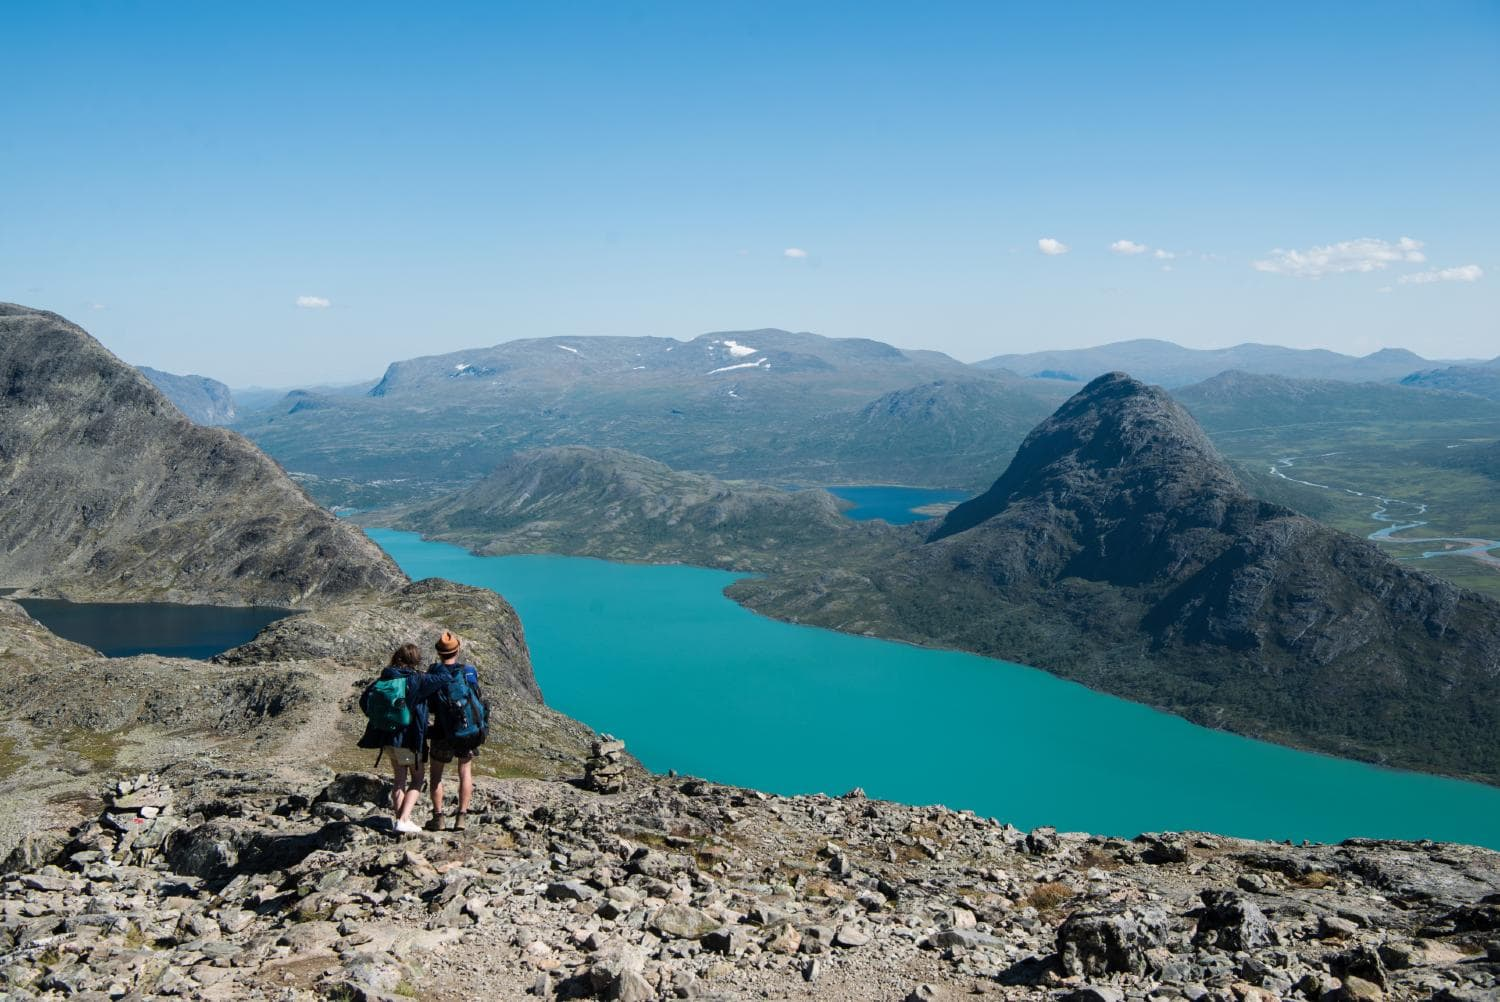 Two hikers about to hike the Besseggen ridge in Jotunheimen Norway